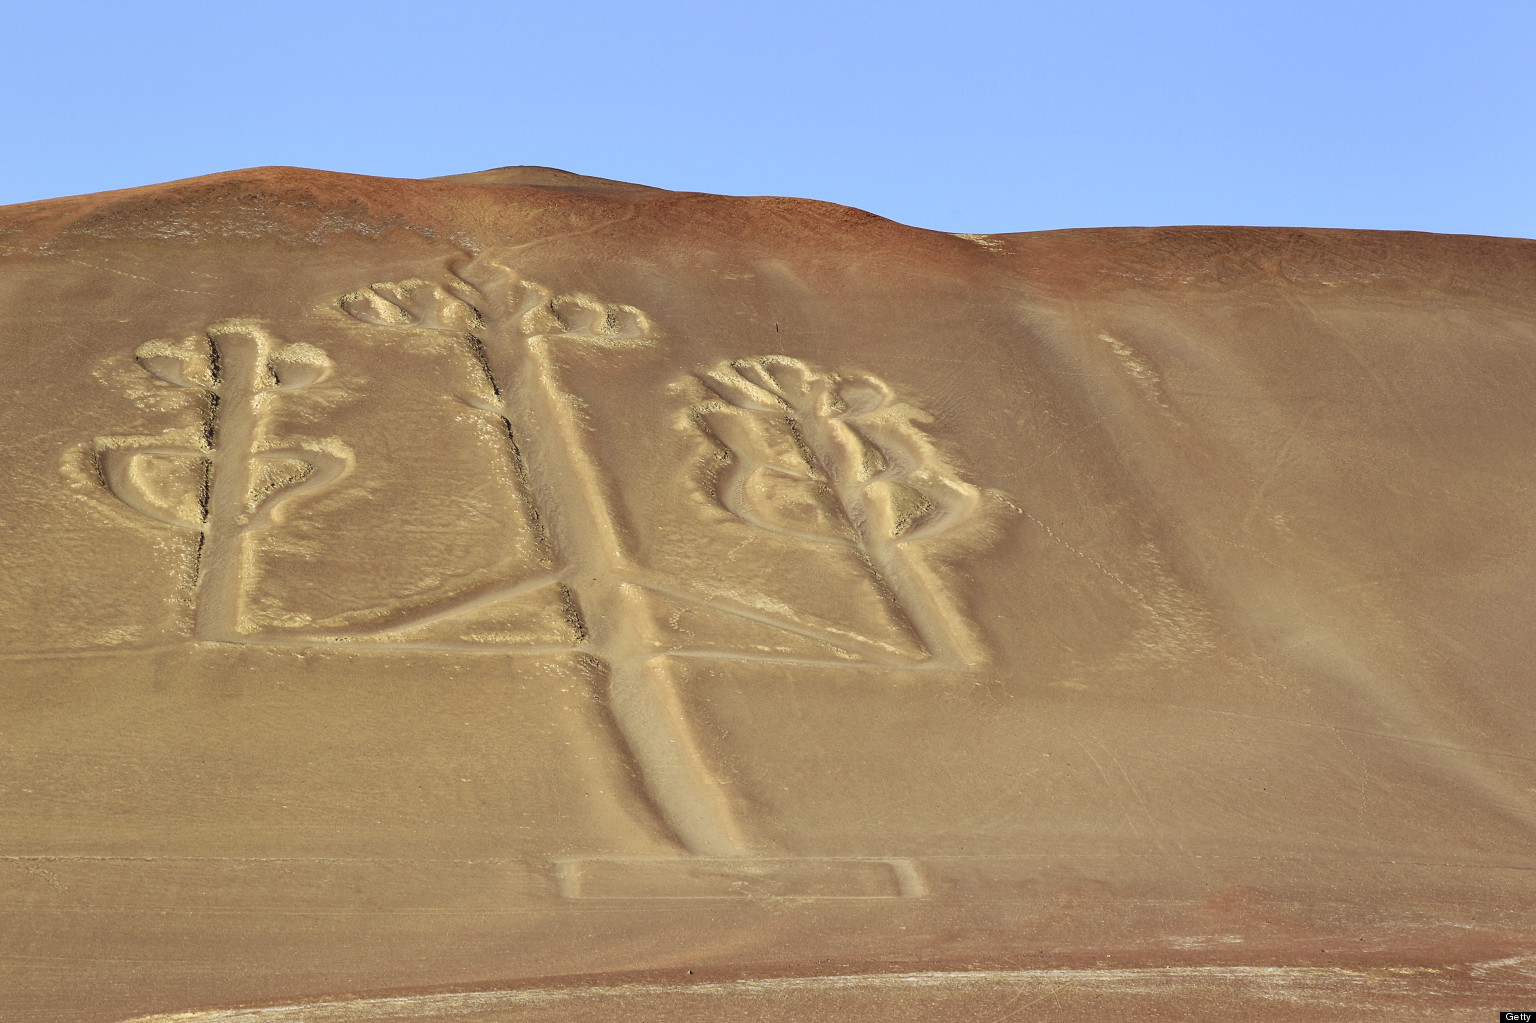 Scientists Discover Geoglyphs In Amazon